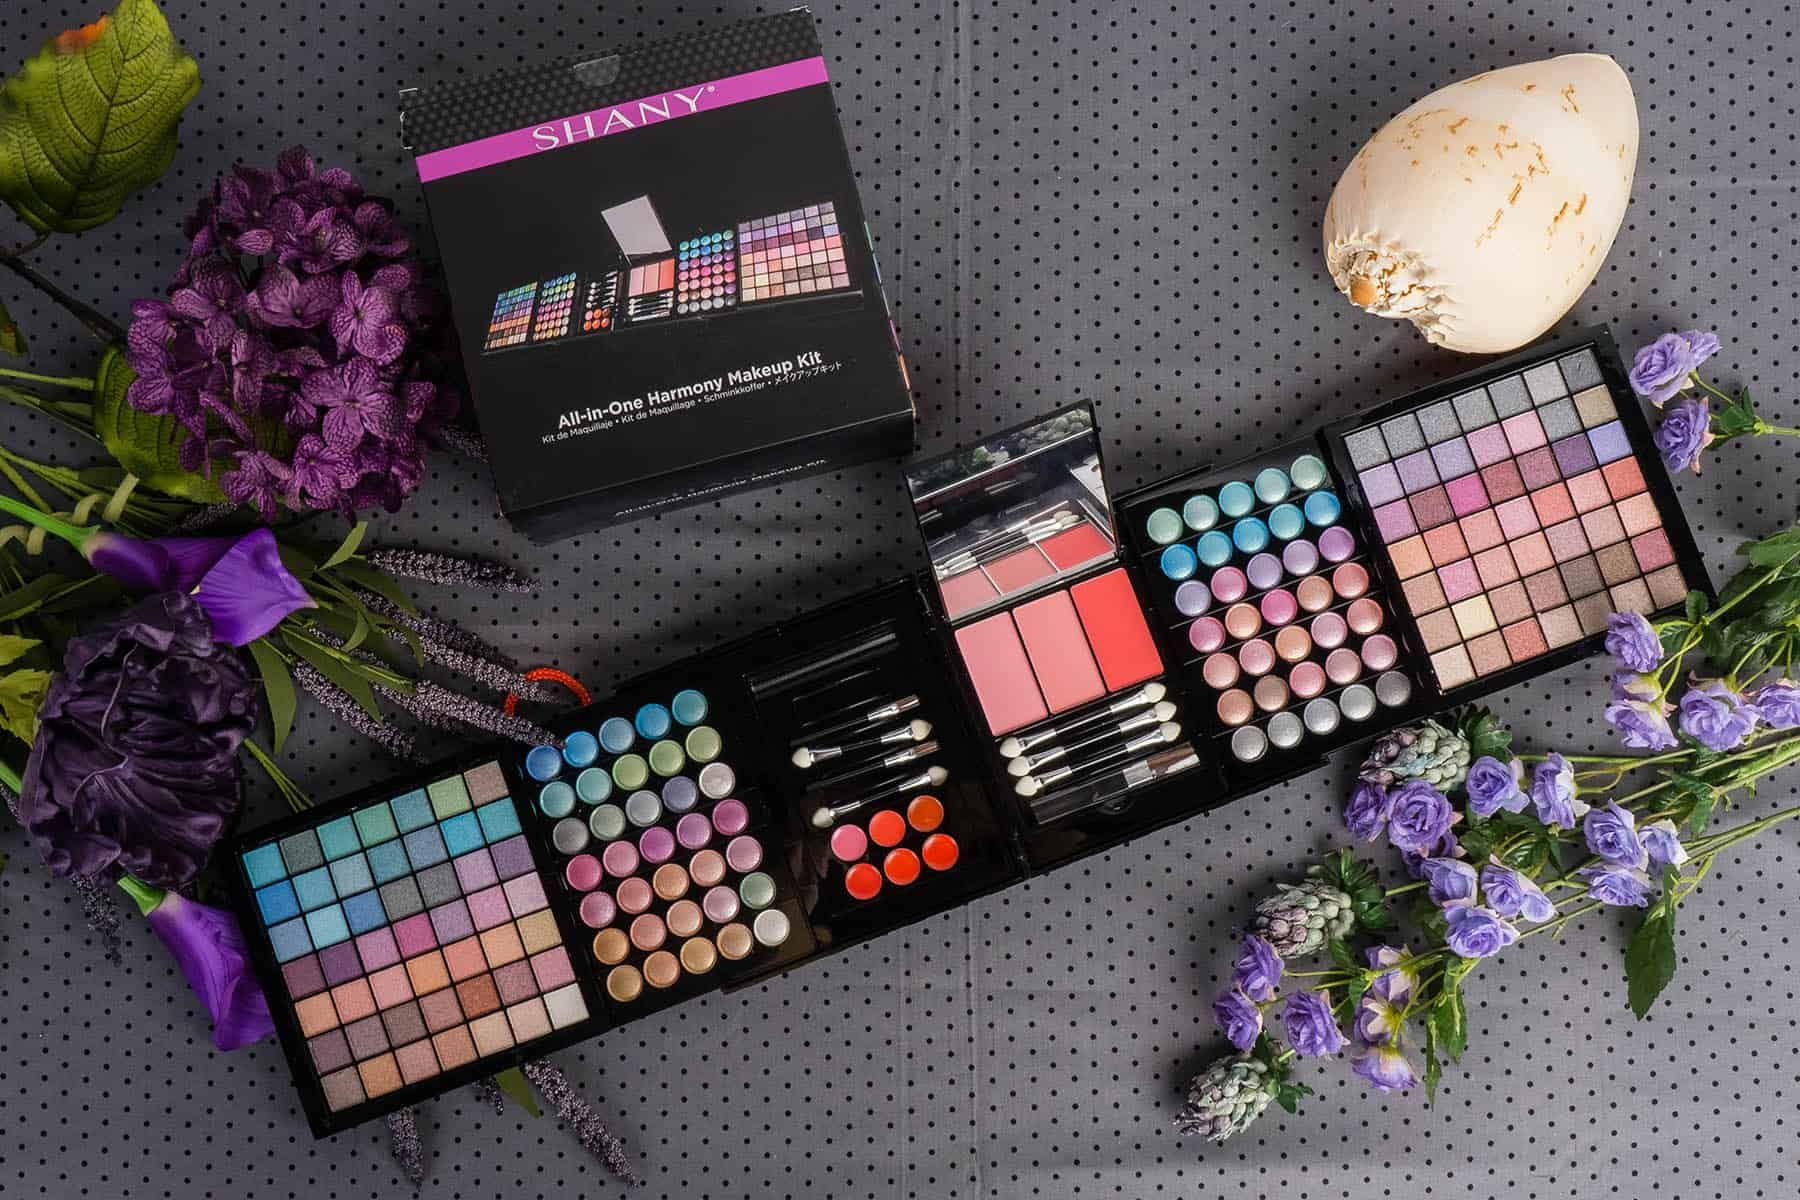 All In One Makeup Kit Unique birthday gifts, Gifts for